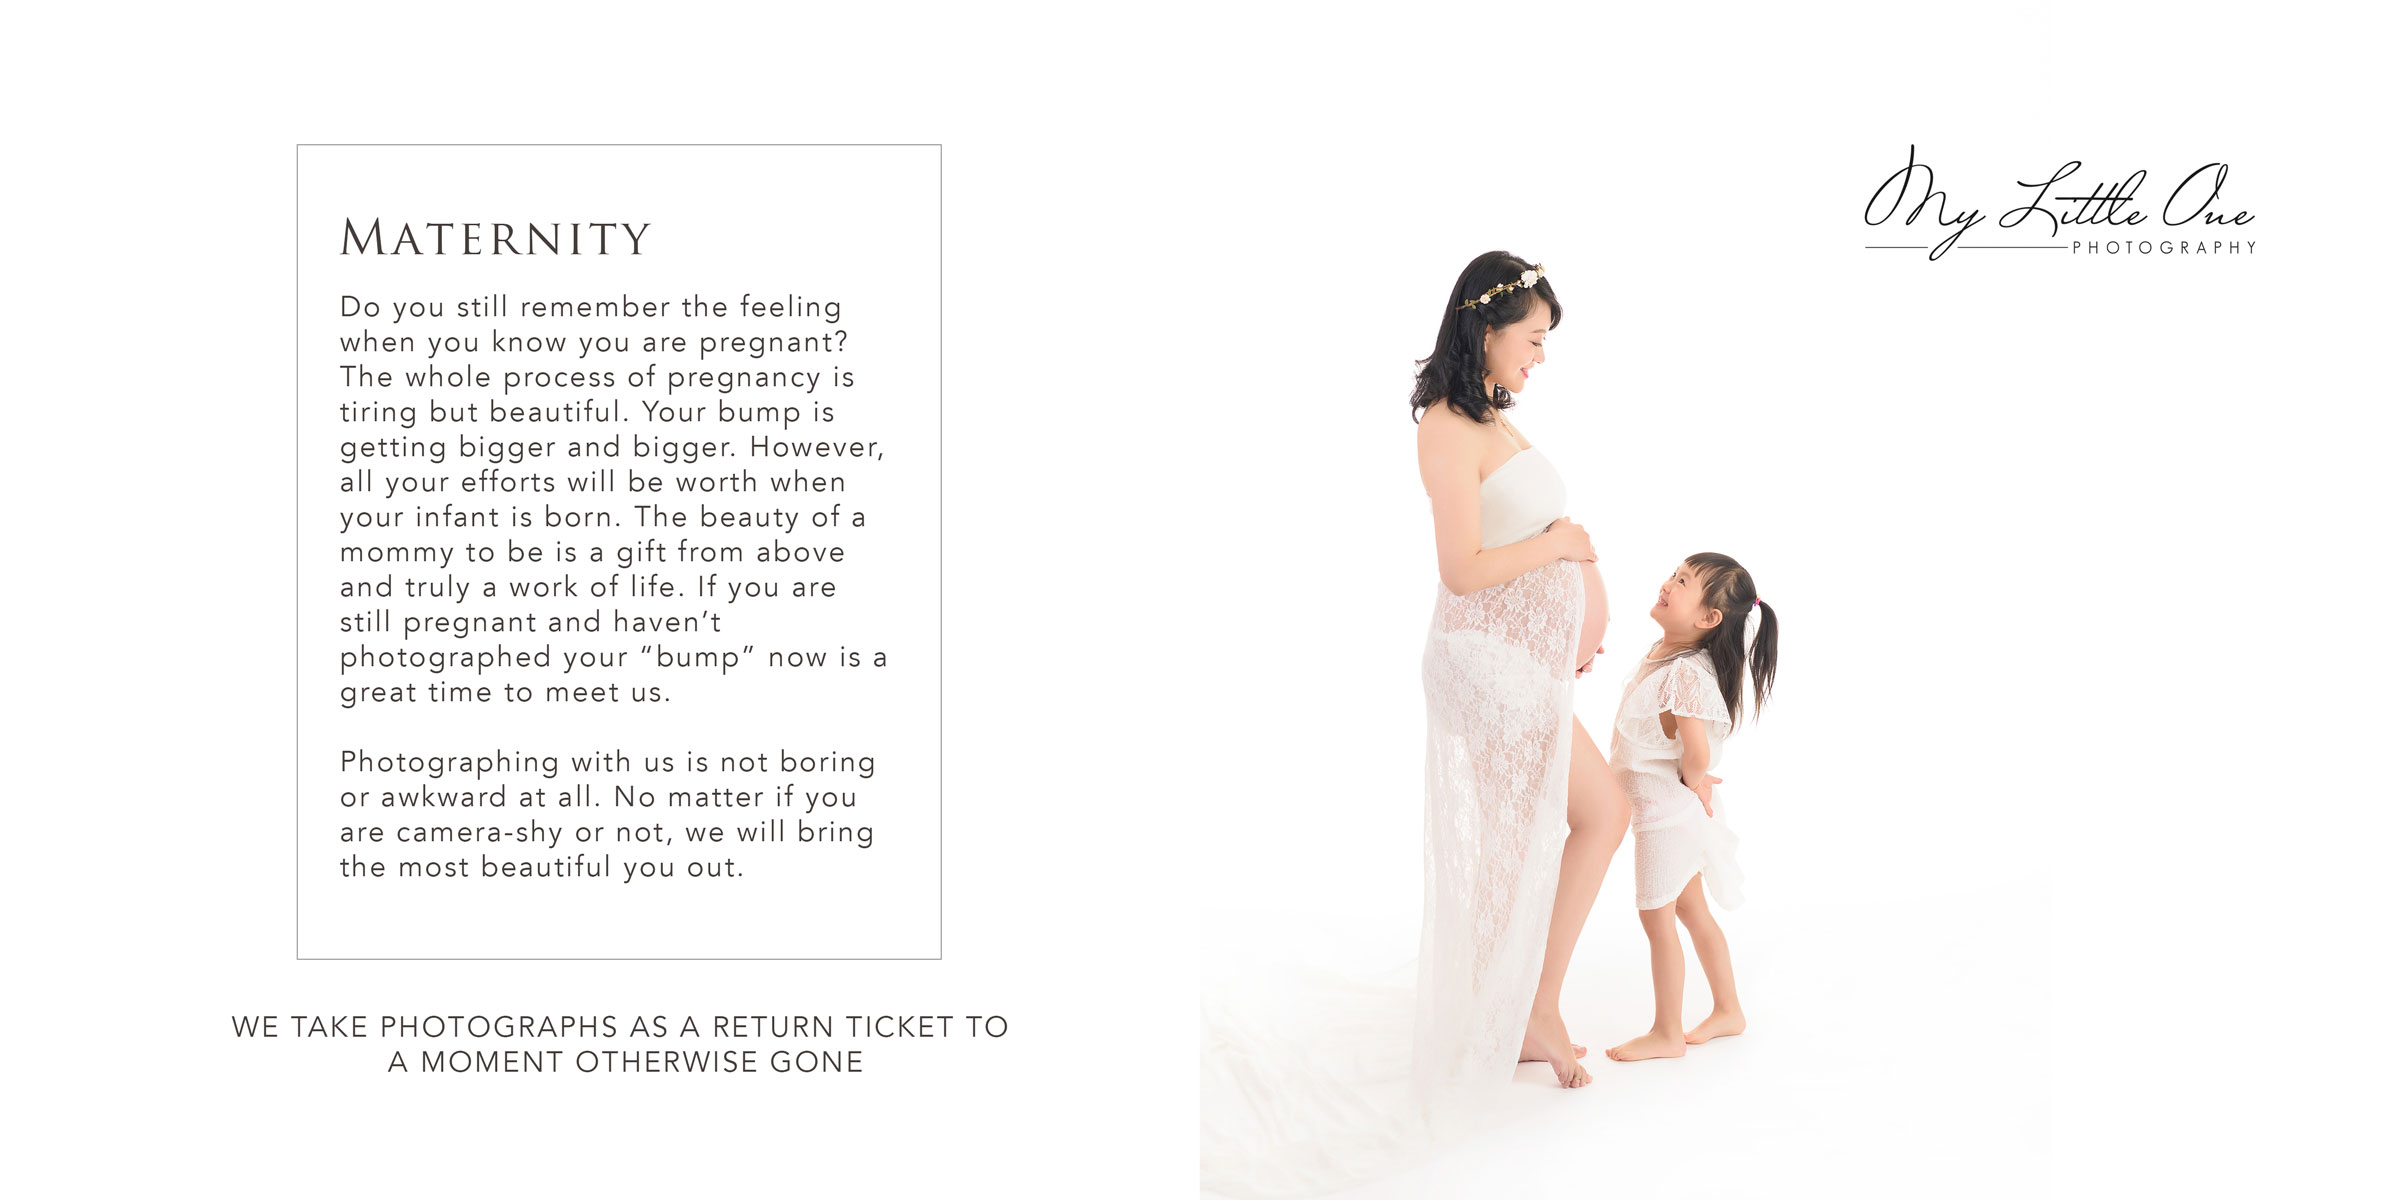 sydney maternity photography